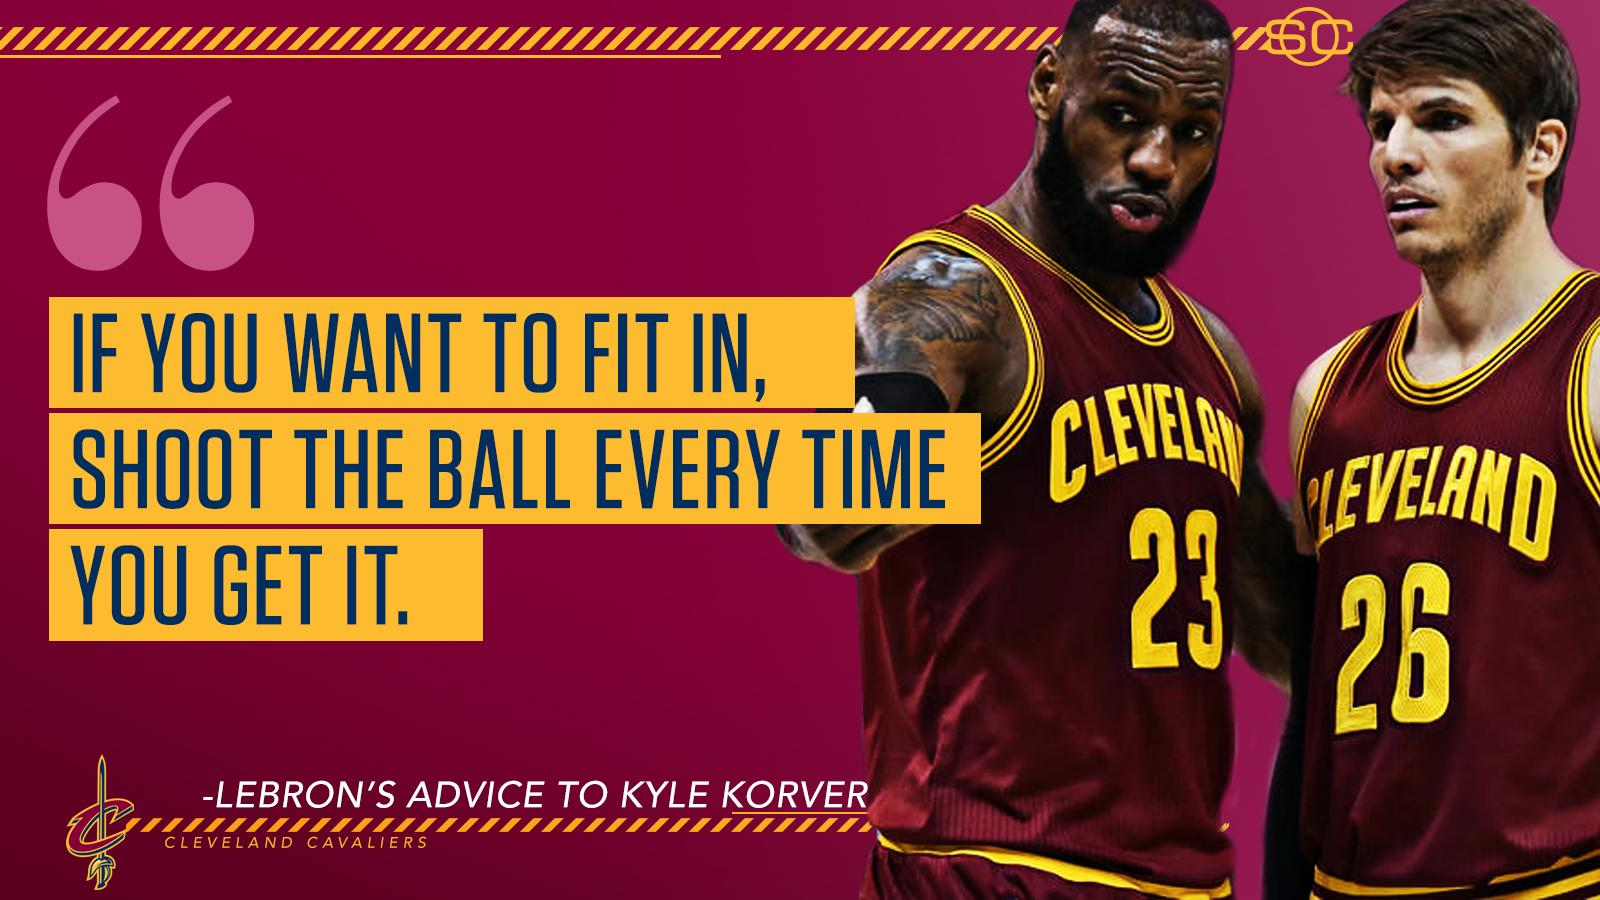 LeBron's advice for Kyler Korver is simple. https://t.co/PTTRzlDsHv